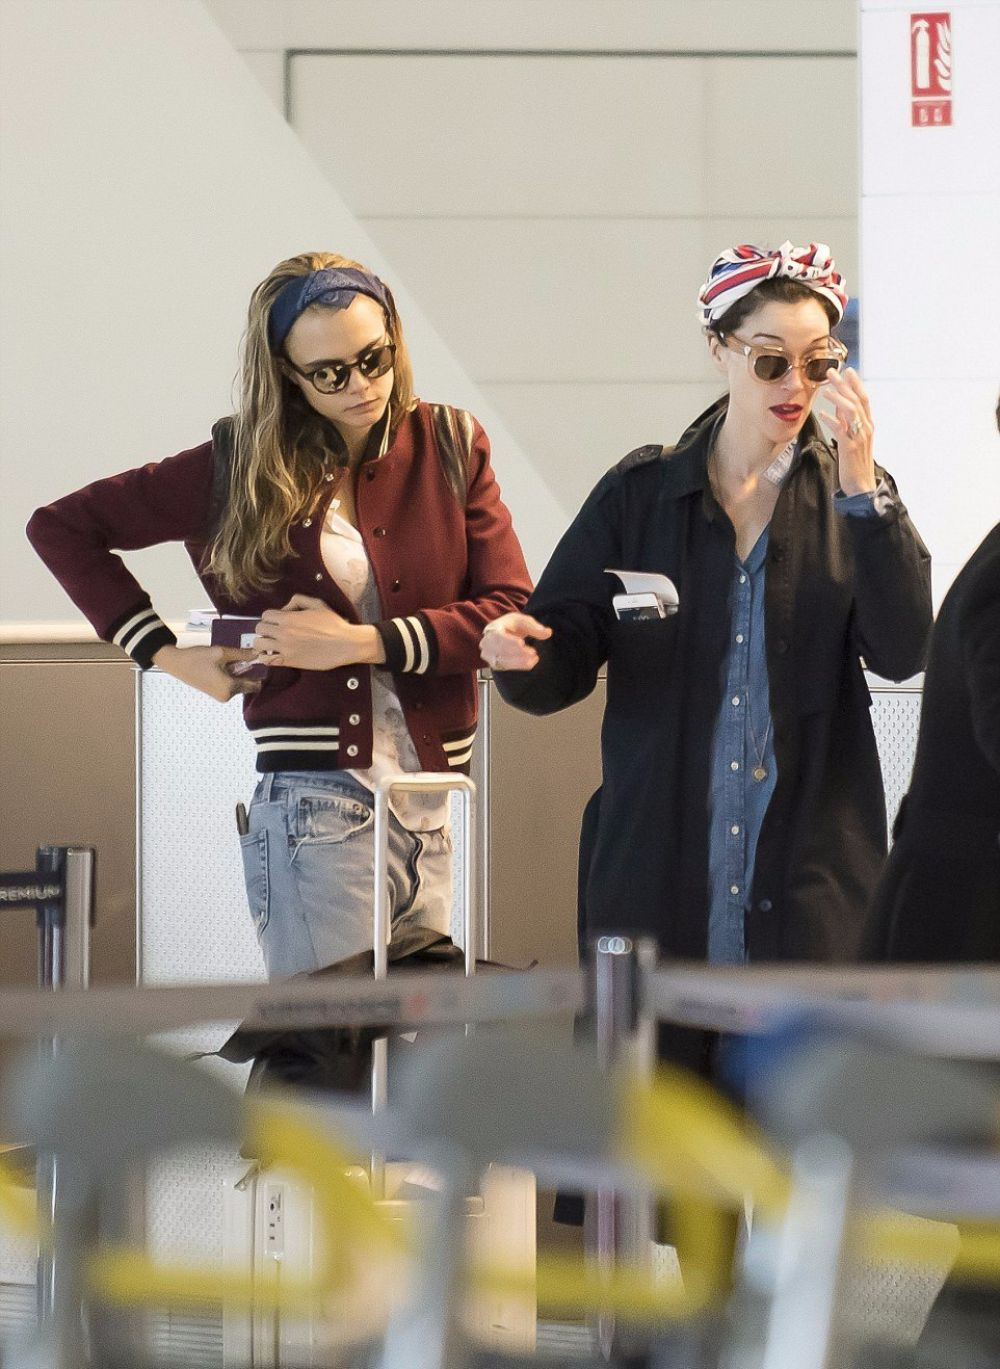 CARA DELEVINGNE and ANNIE CLARK at Charles De Gaulle Airport in Paris 02/20/2016